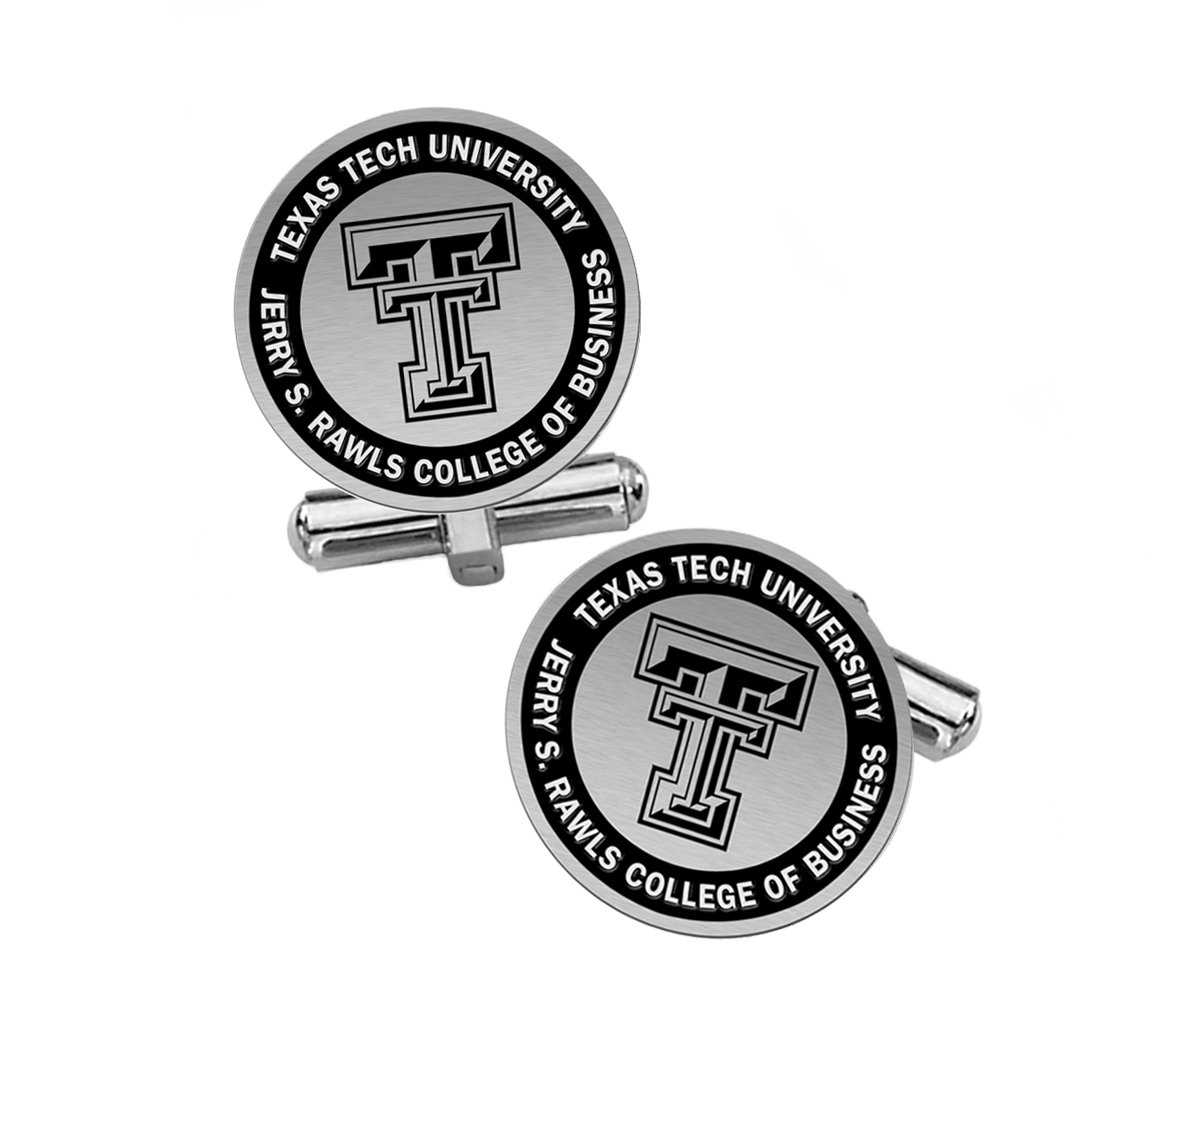 Jerry S. Rawls College of Business Cuff Links   Texas Tech University